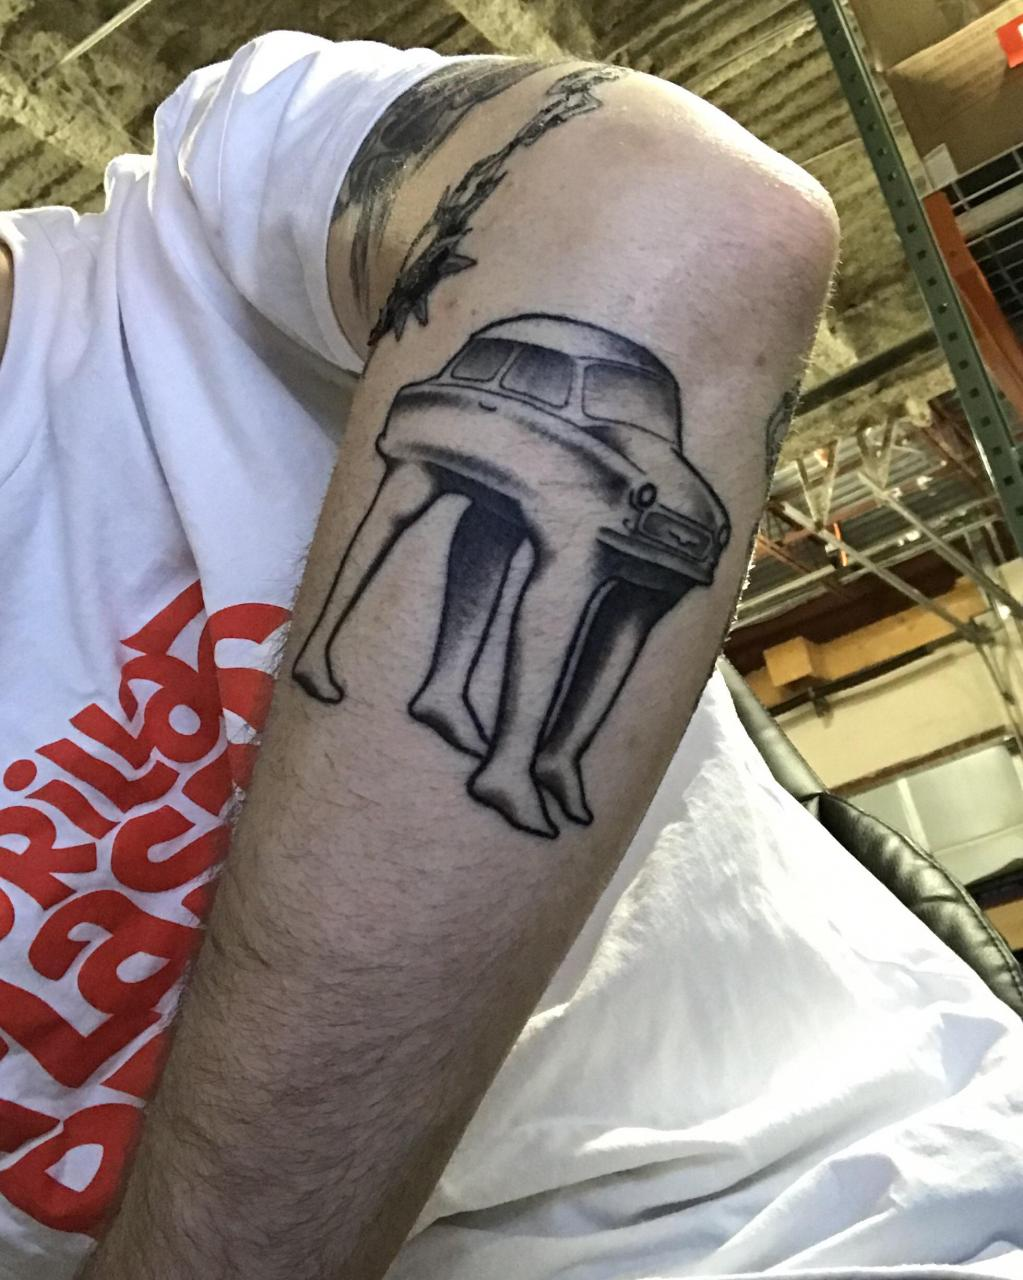 Car with legs done by Marcel at The Black Rose in Pickering, Ontario (healed)